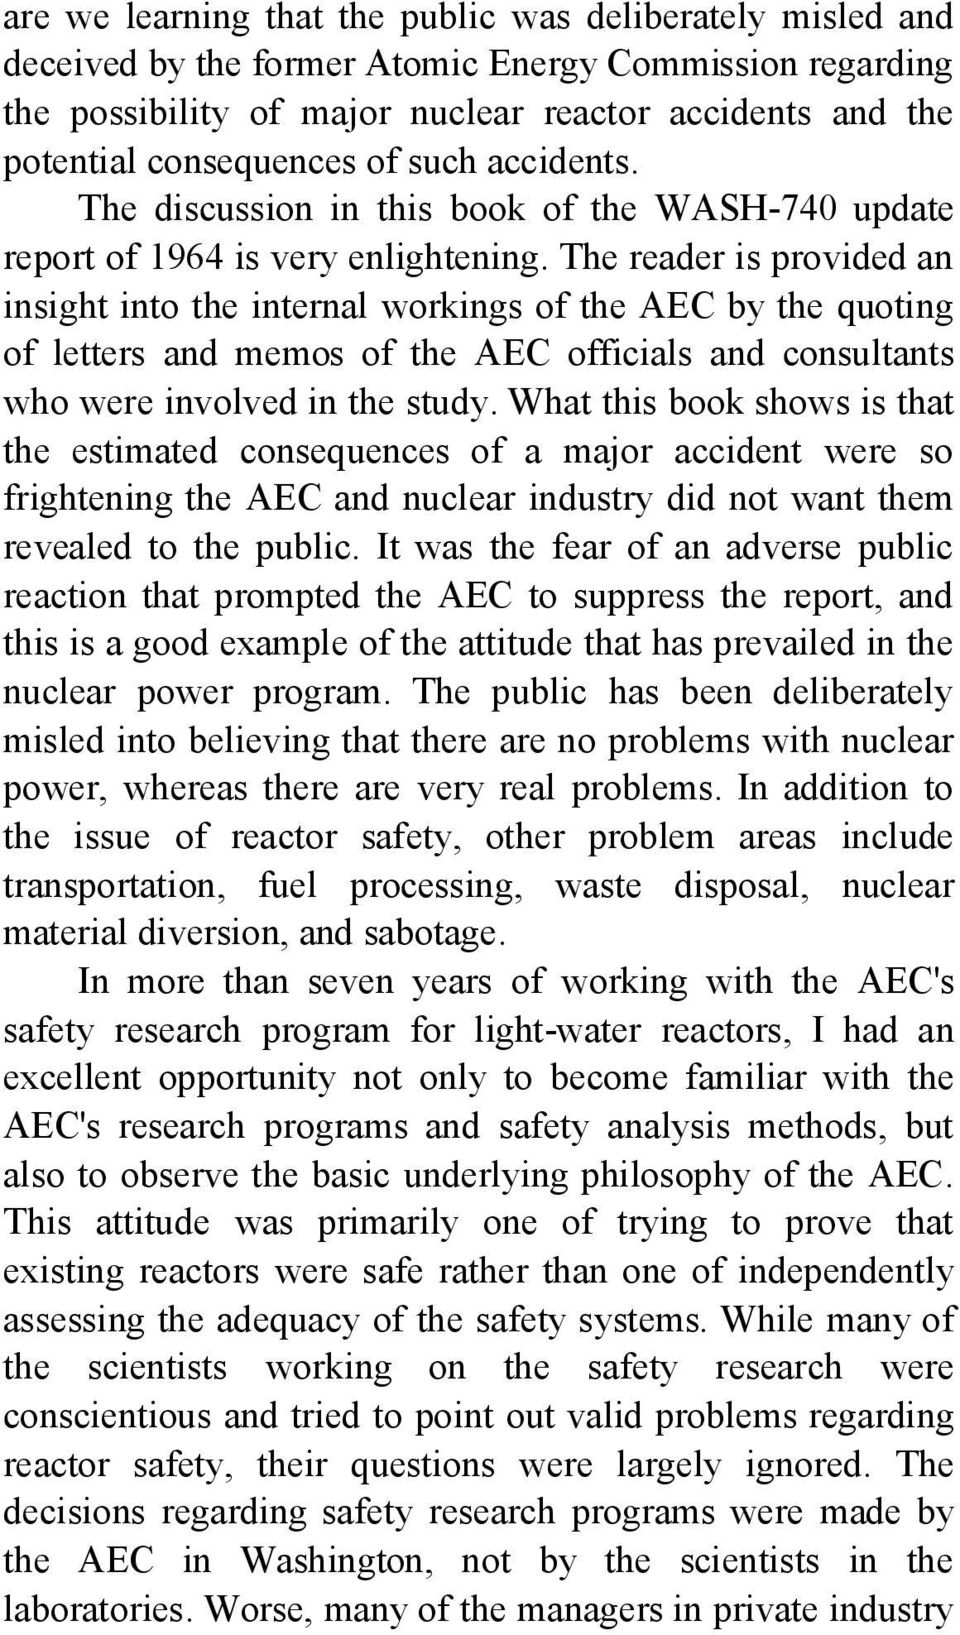 The reader is provided an insight into the internal workings of the AEC by the quoting of letters and memos of the AEC officials and consultants who were involved in the study.